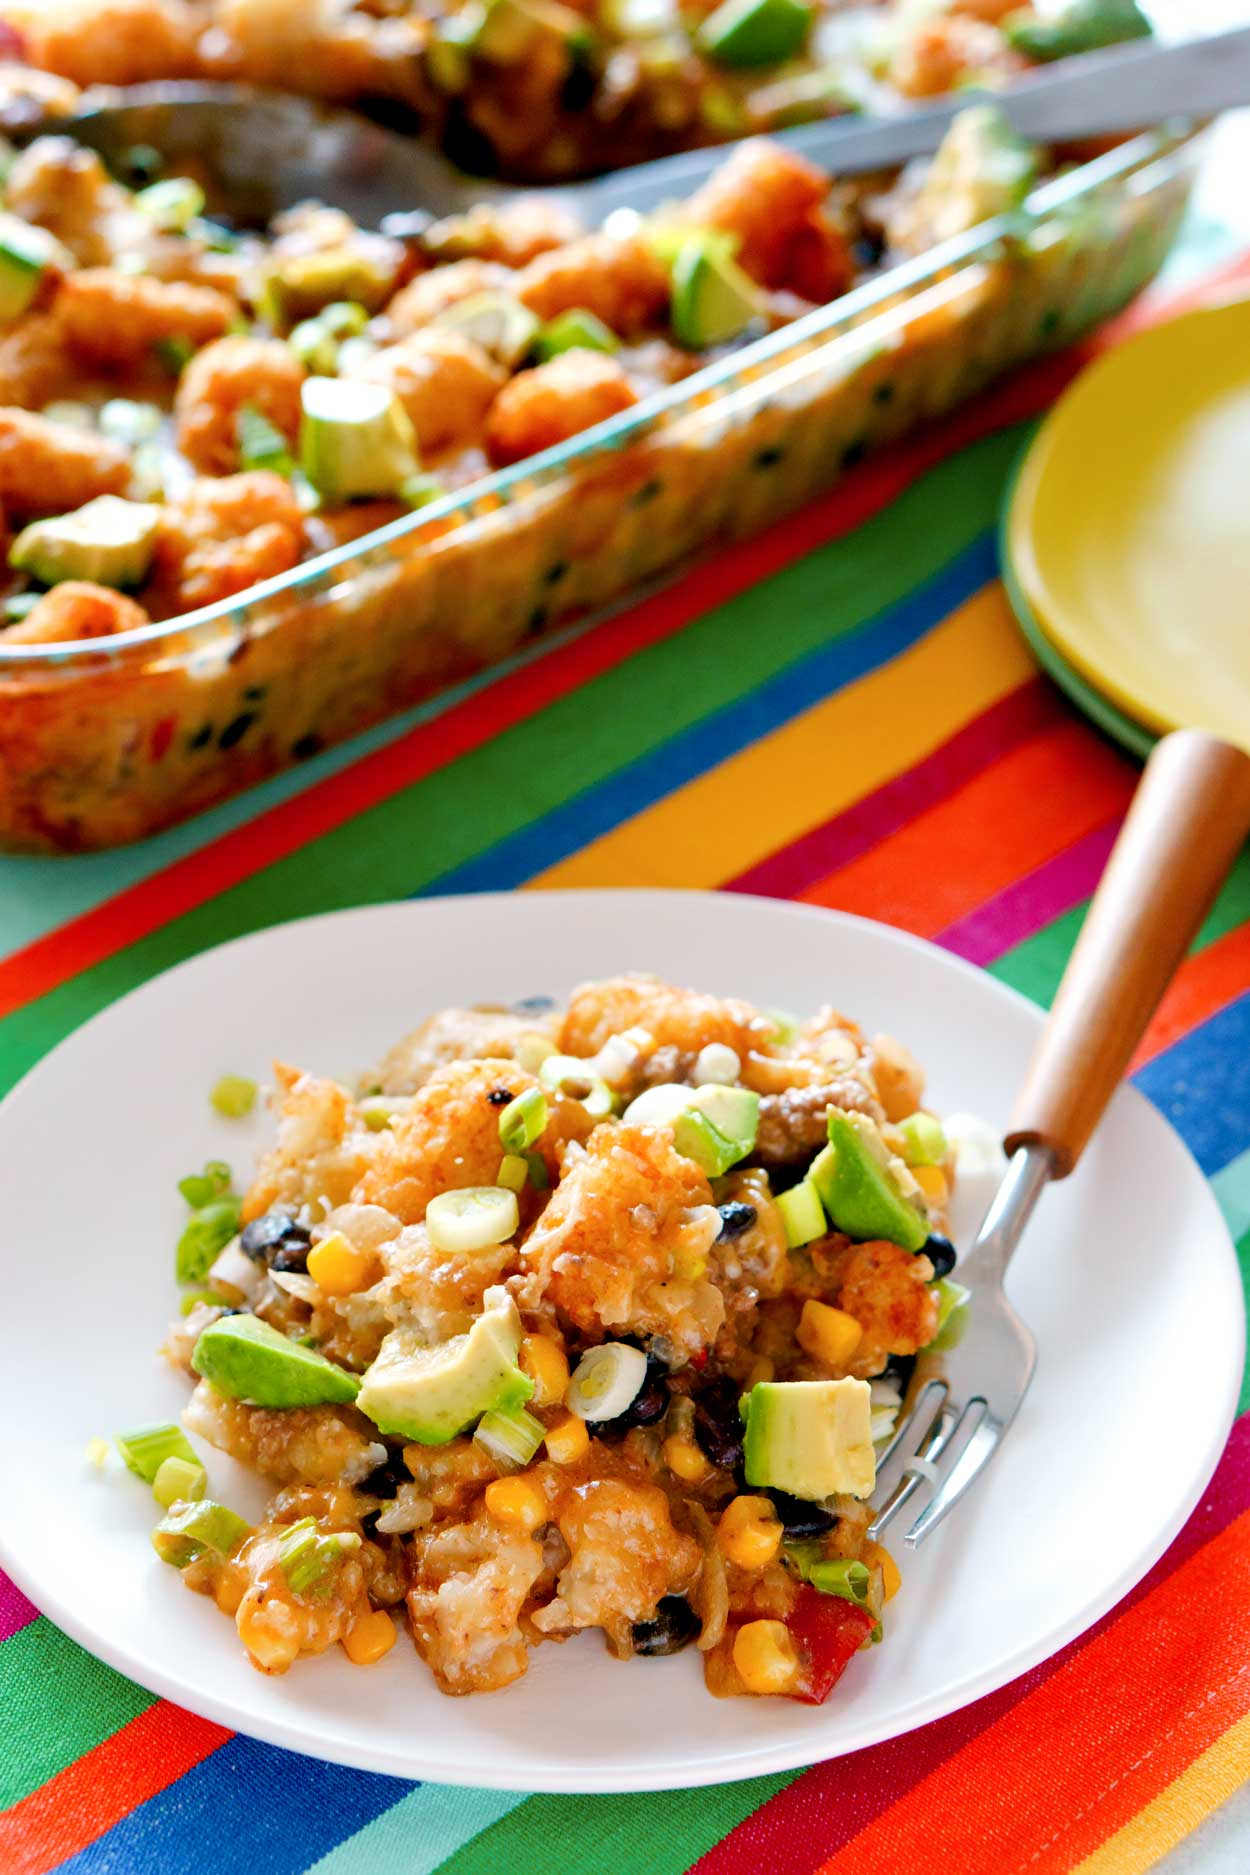 Tater Tot Casserole with corn